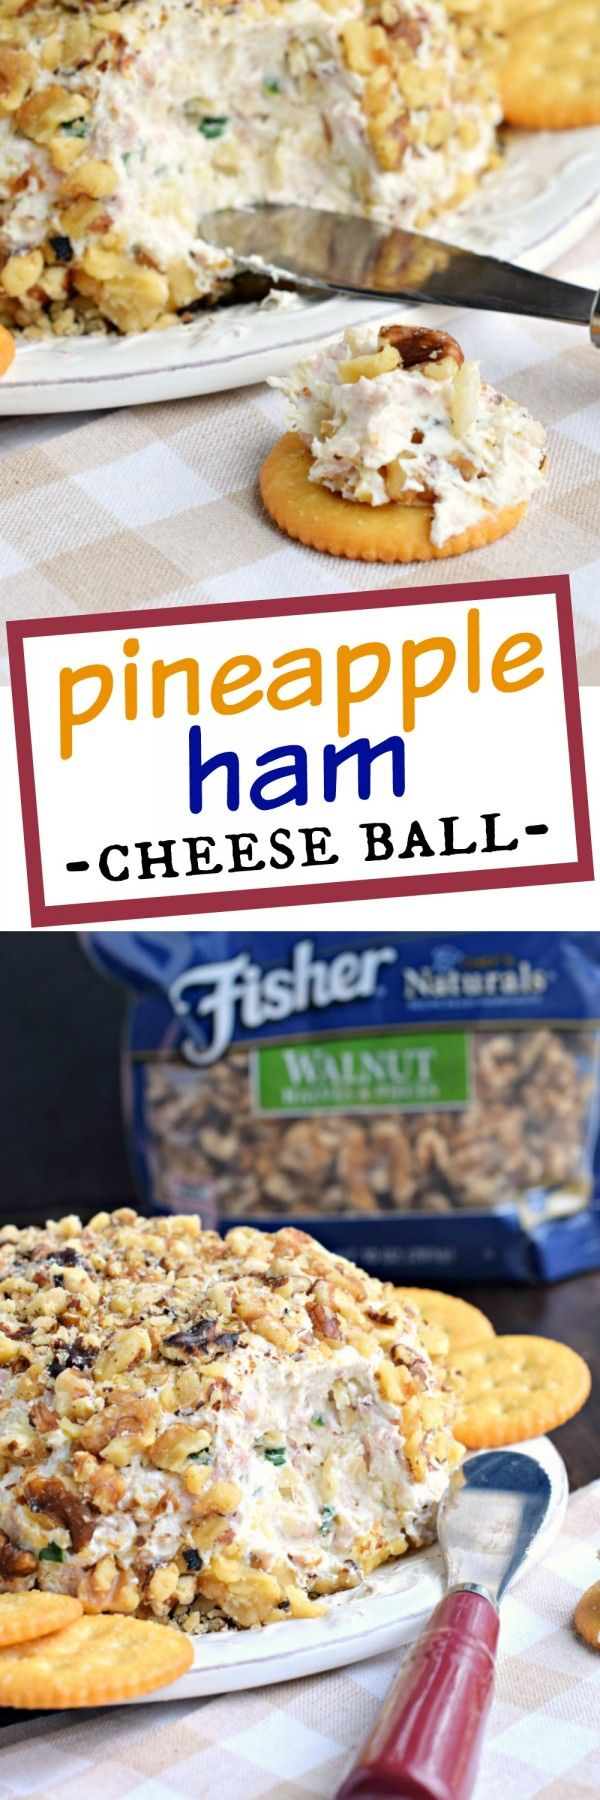 If you're looking for the most delicious game day snack